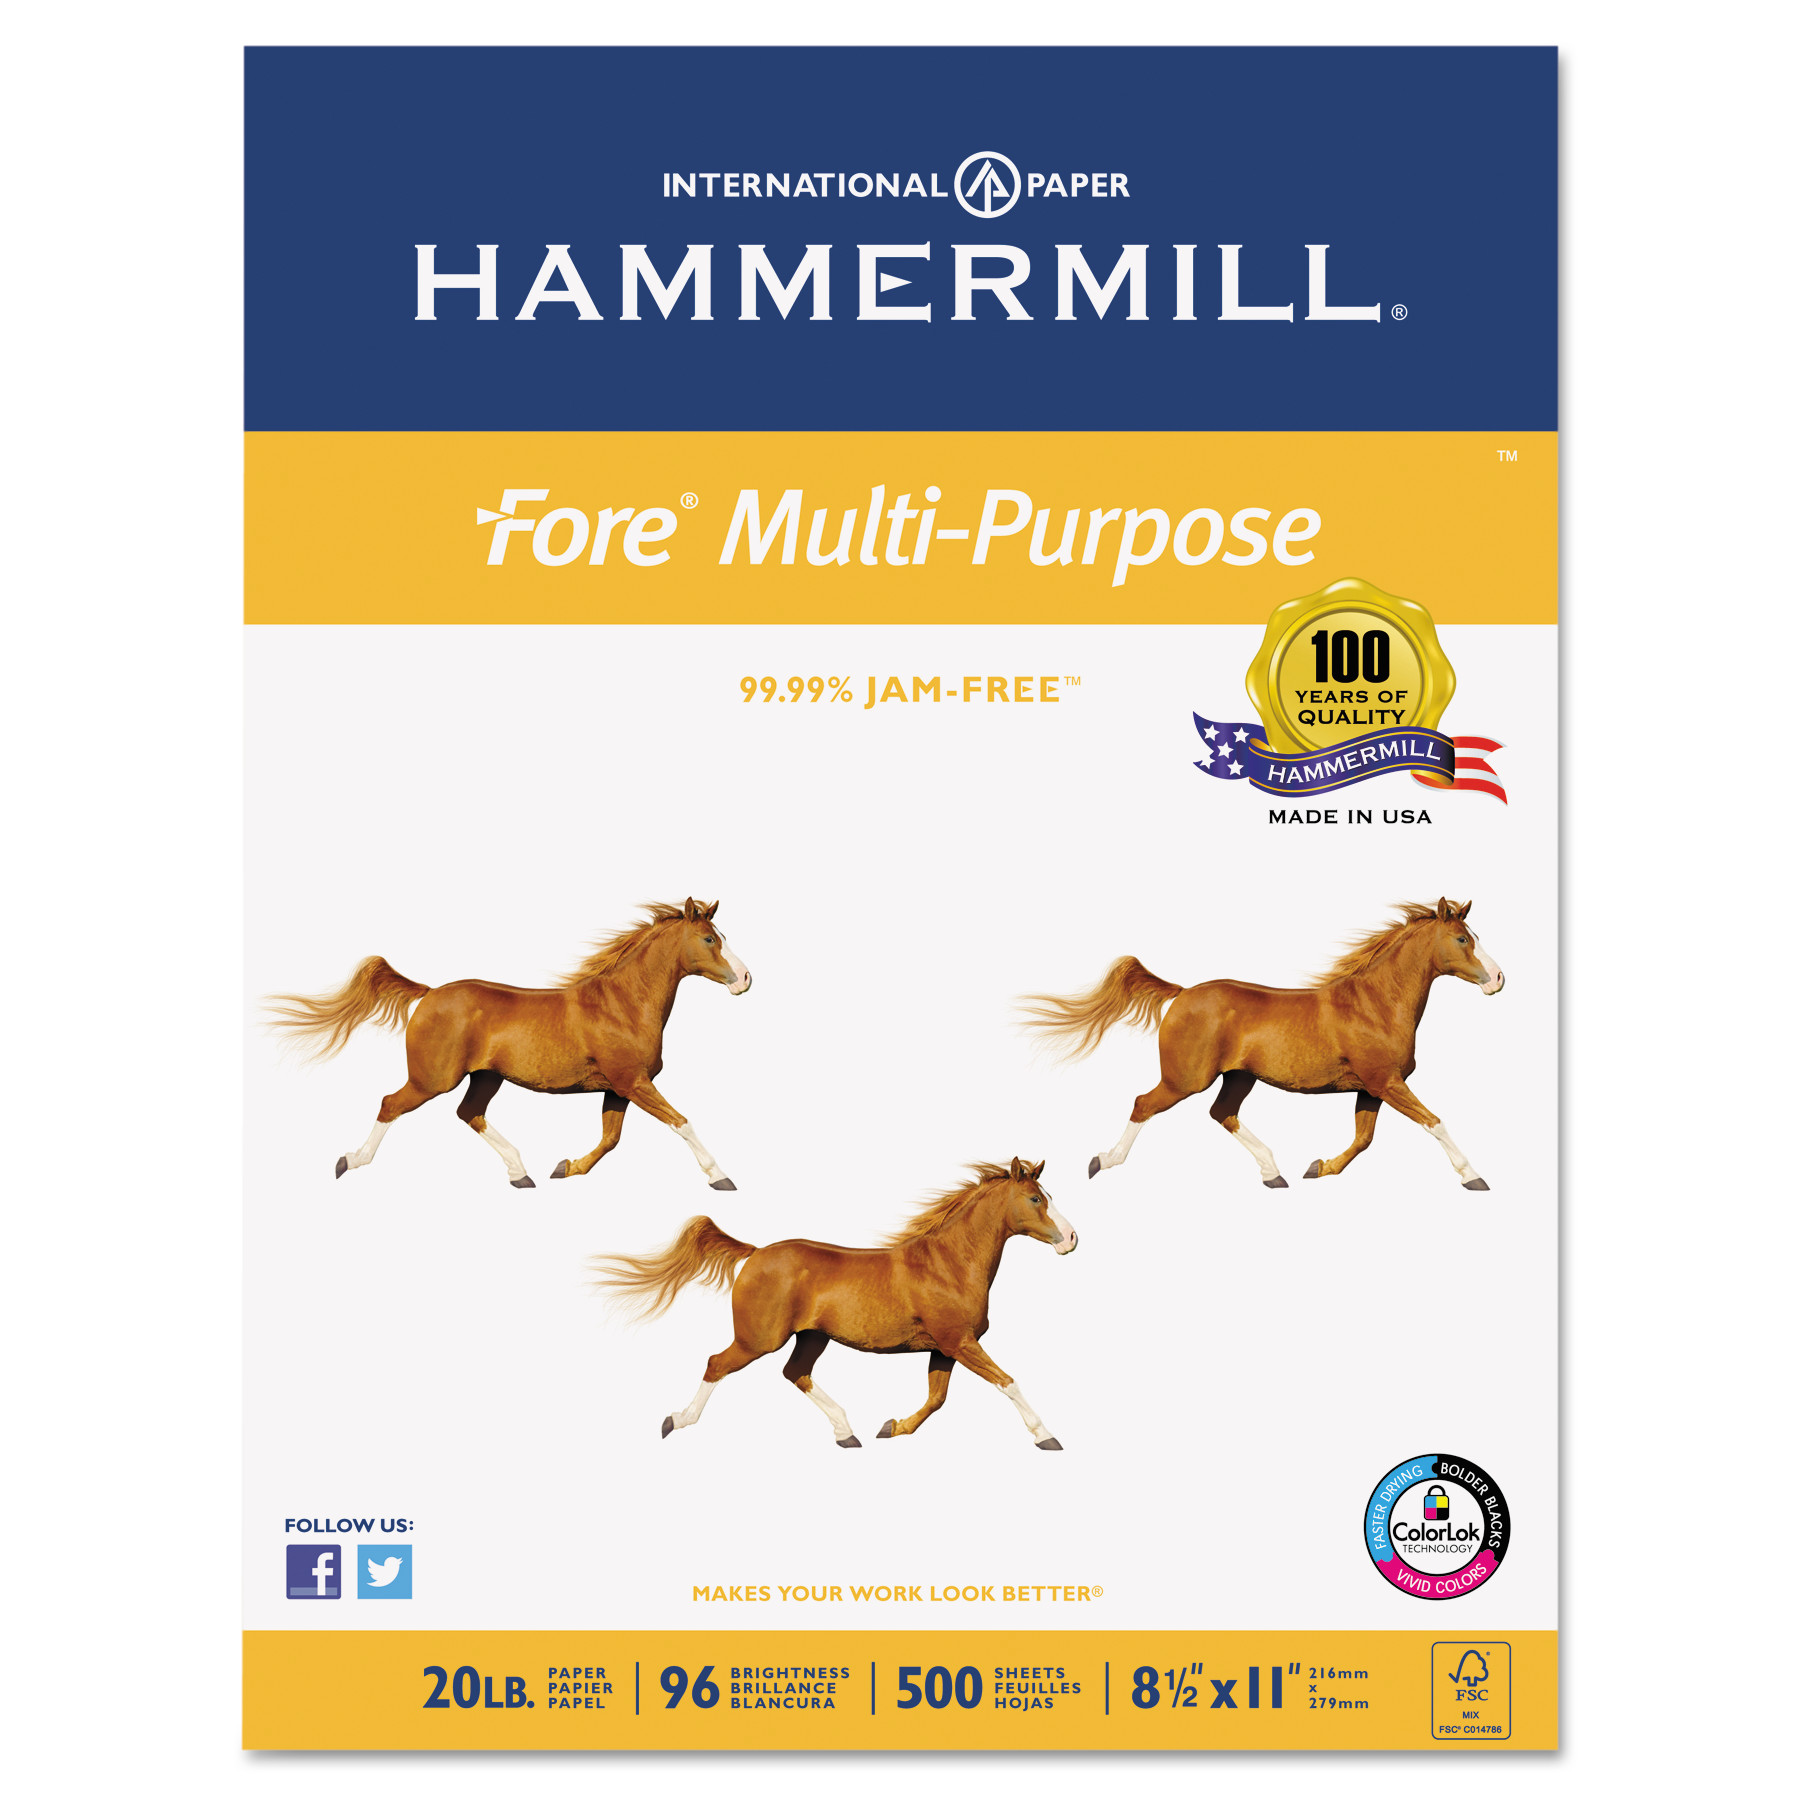 Hammermill Fore MP Multipurpose 20lb Paper, 96 Brightness, 8-1/2 x 11, 10 Ream/Case (500 Sheet/Ream)